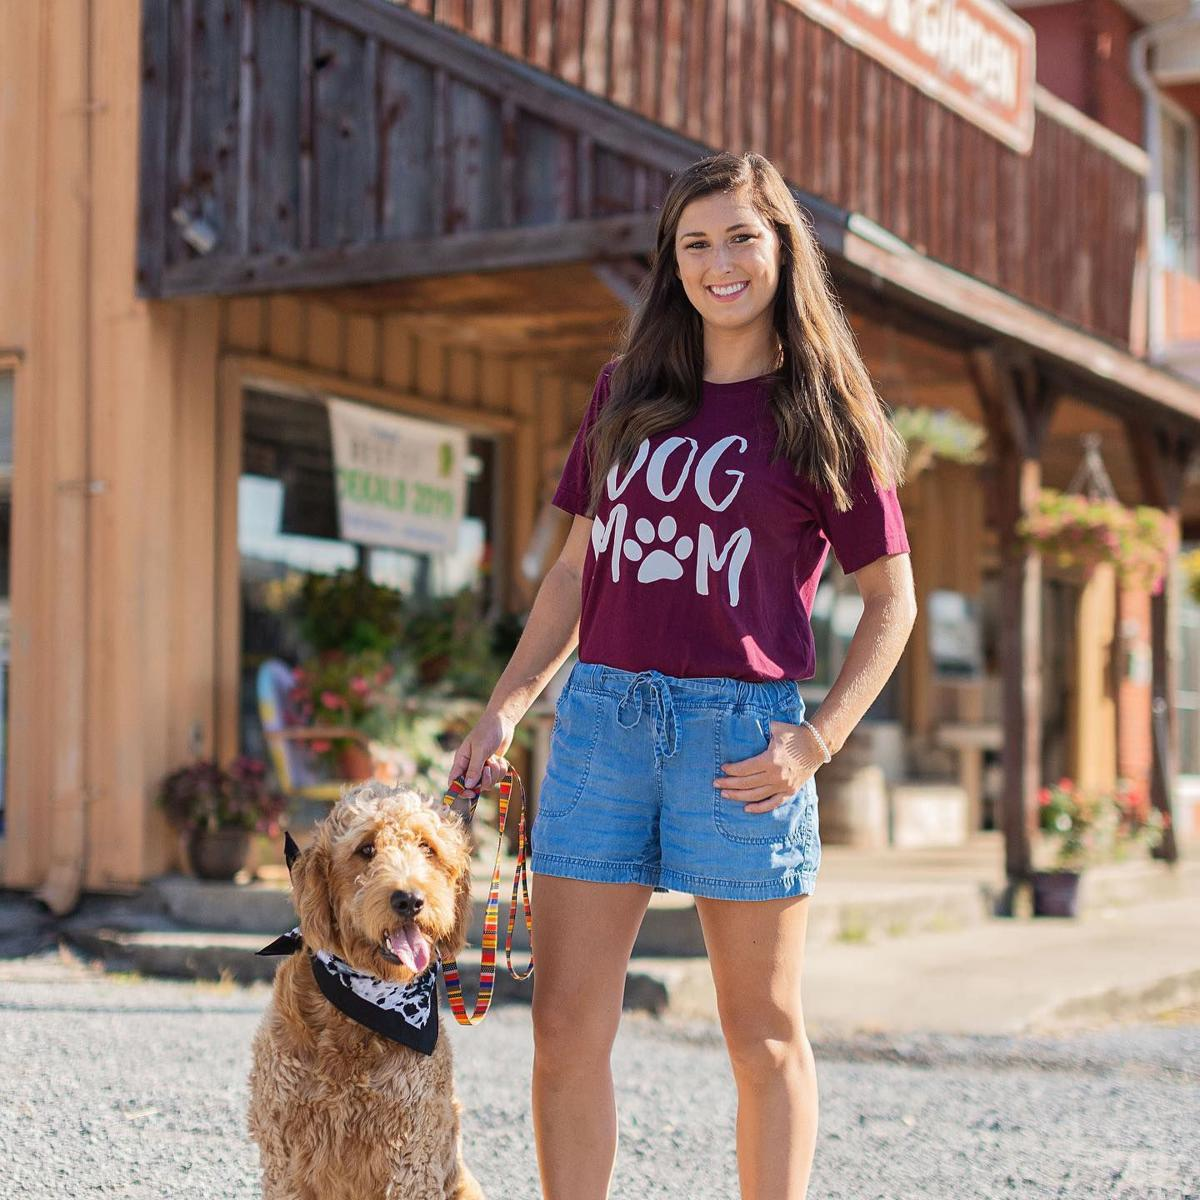 Local business gears up for Dog Days of Summer